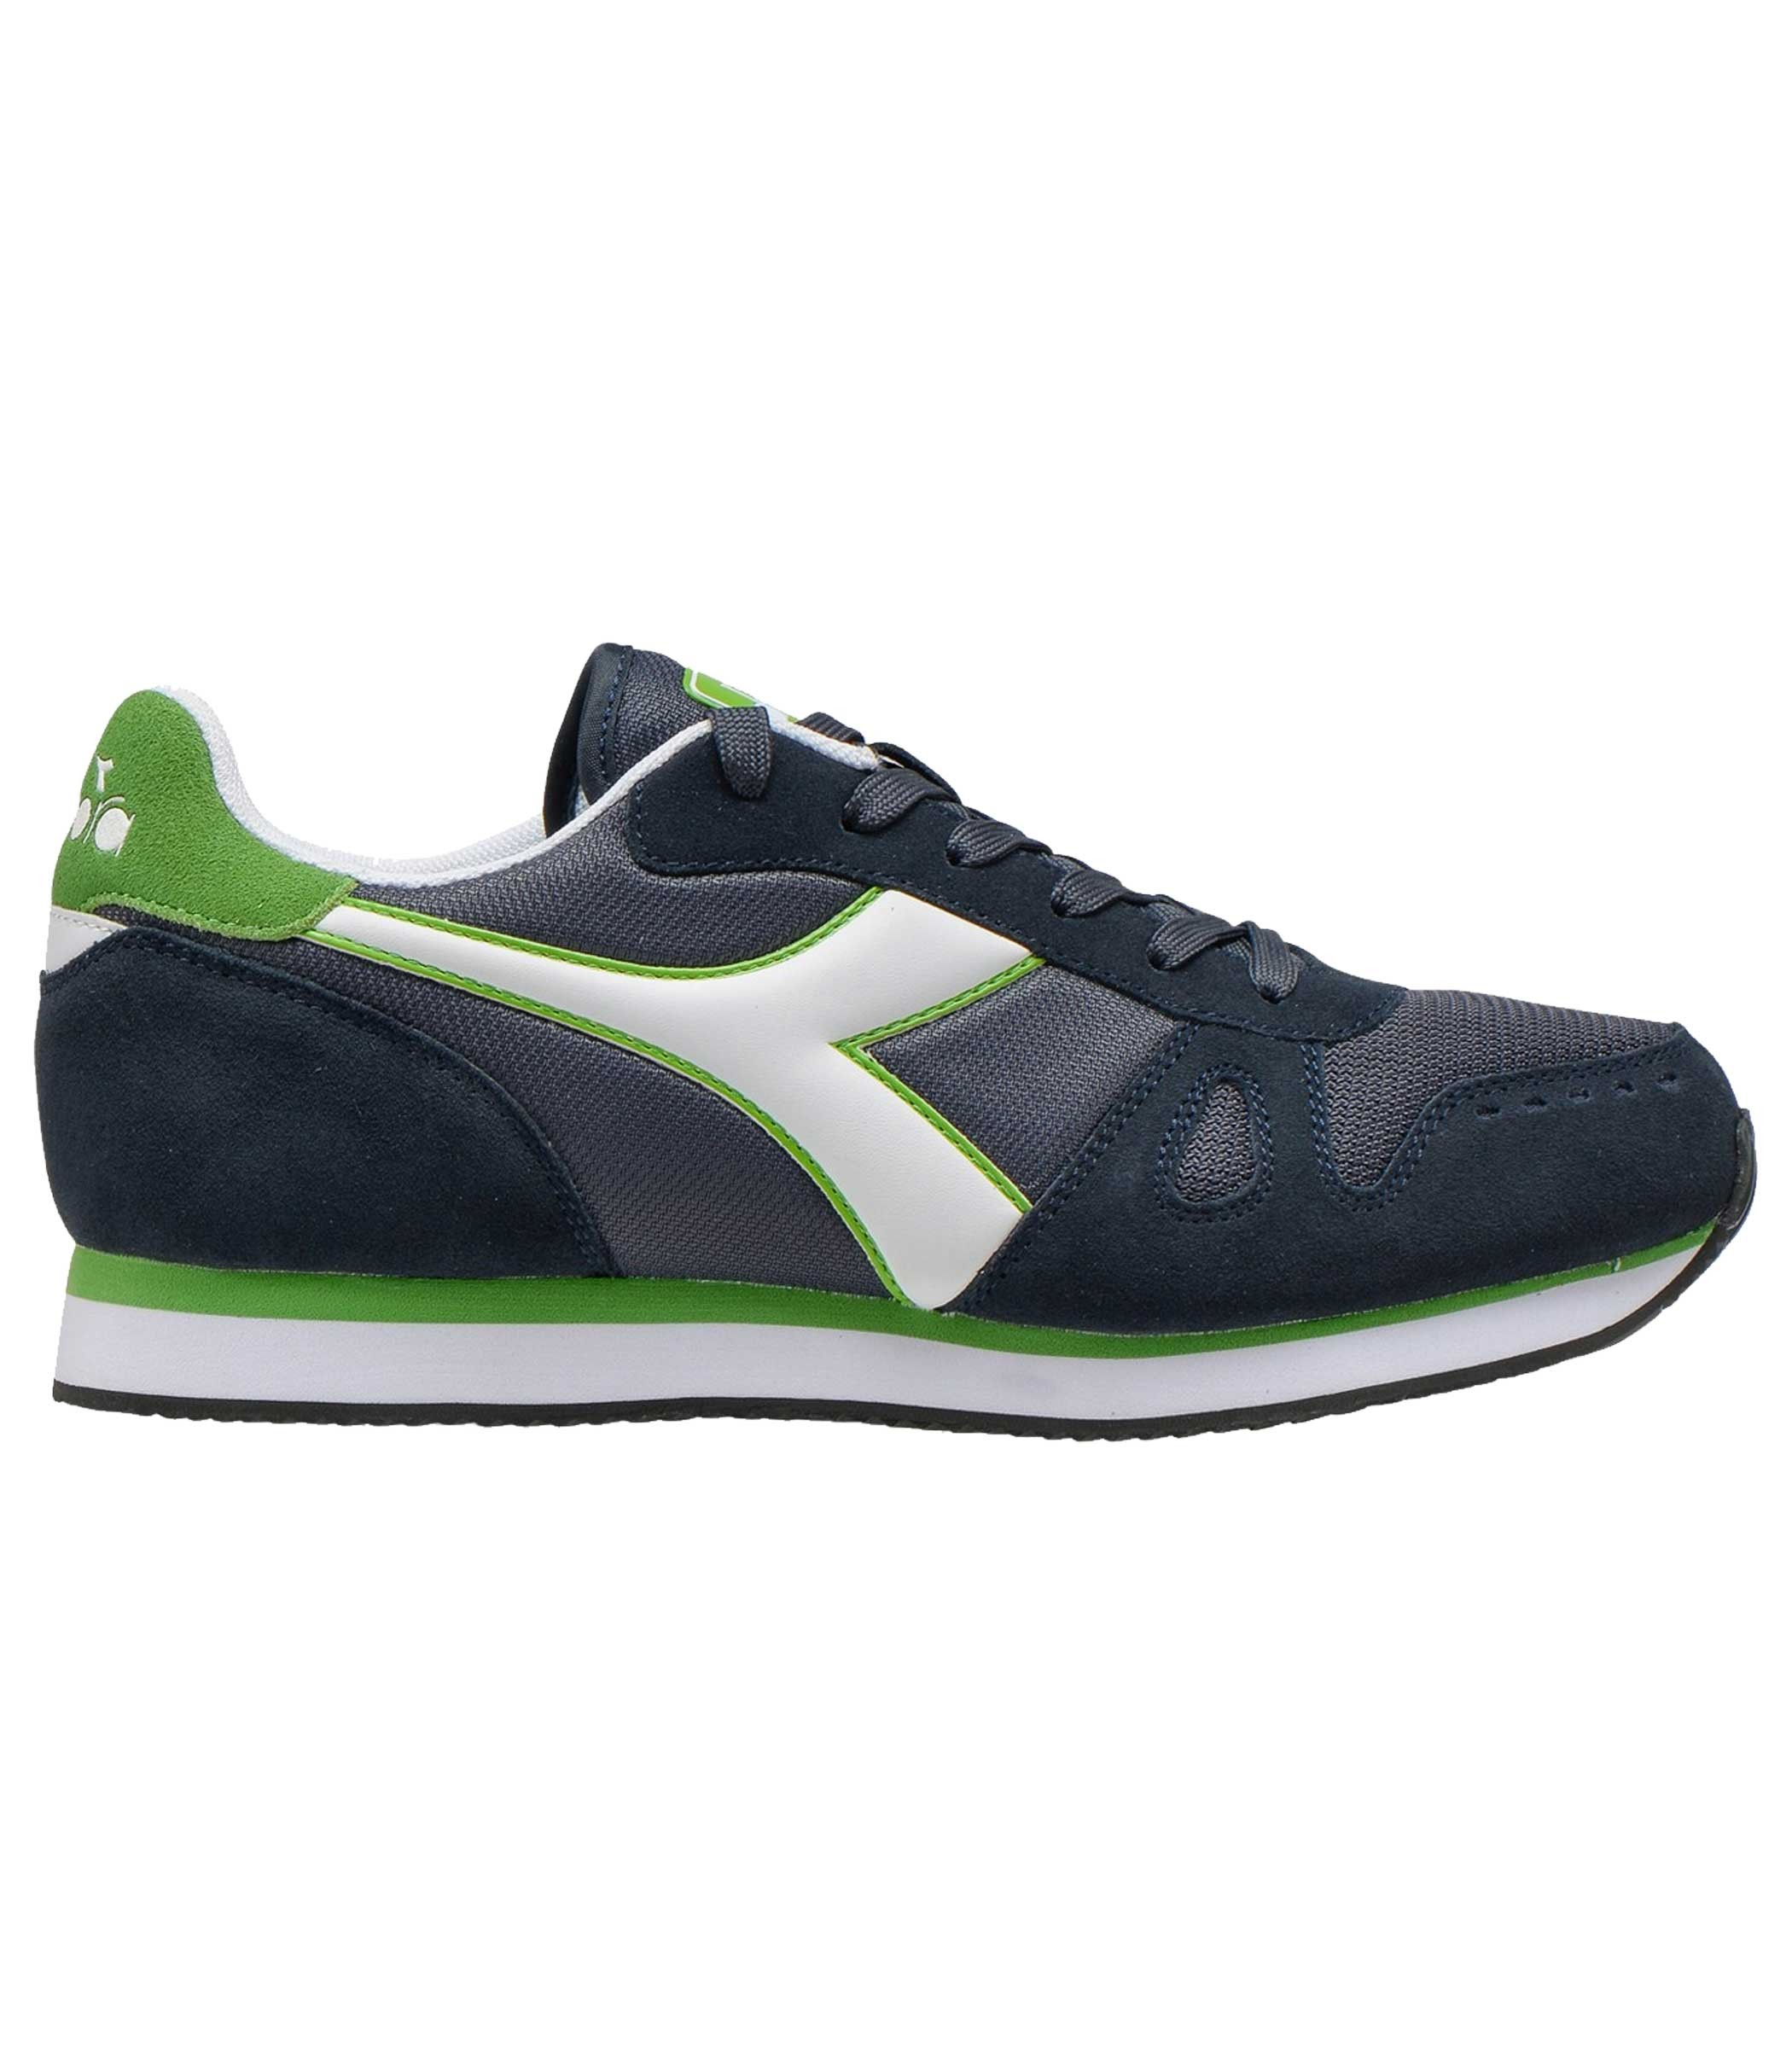 Uomo 101 Rif Scarpe Run Simple Da Sneakers Diadora 173745 6CqzaO